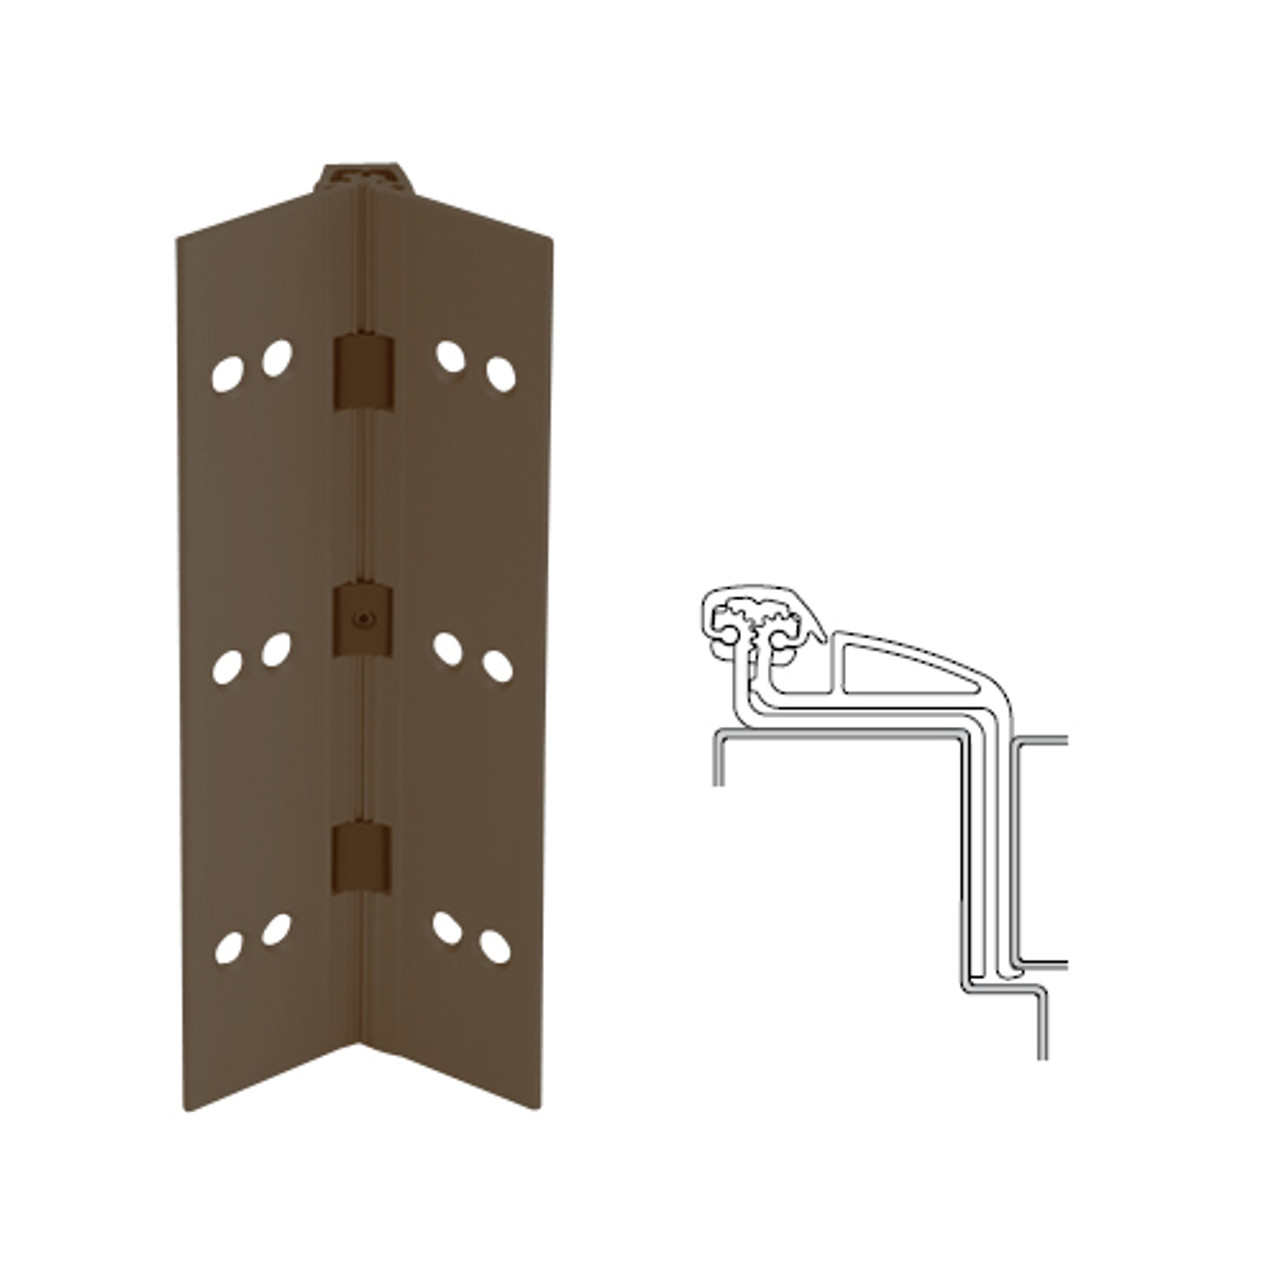 041XY-313AN-85-TEKWD IVES Full Mortise Continuous Geared Hinges with Wood Screws in Dark Bronze Anodized